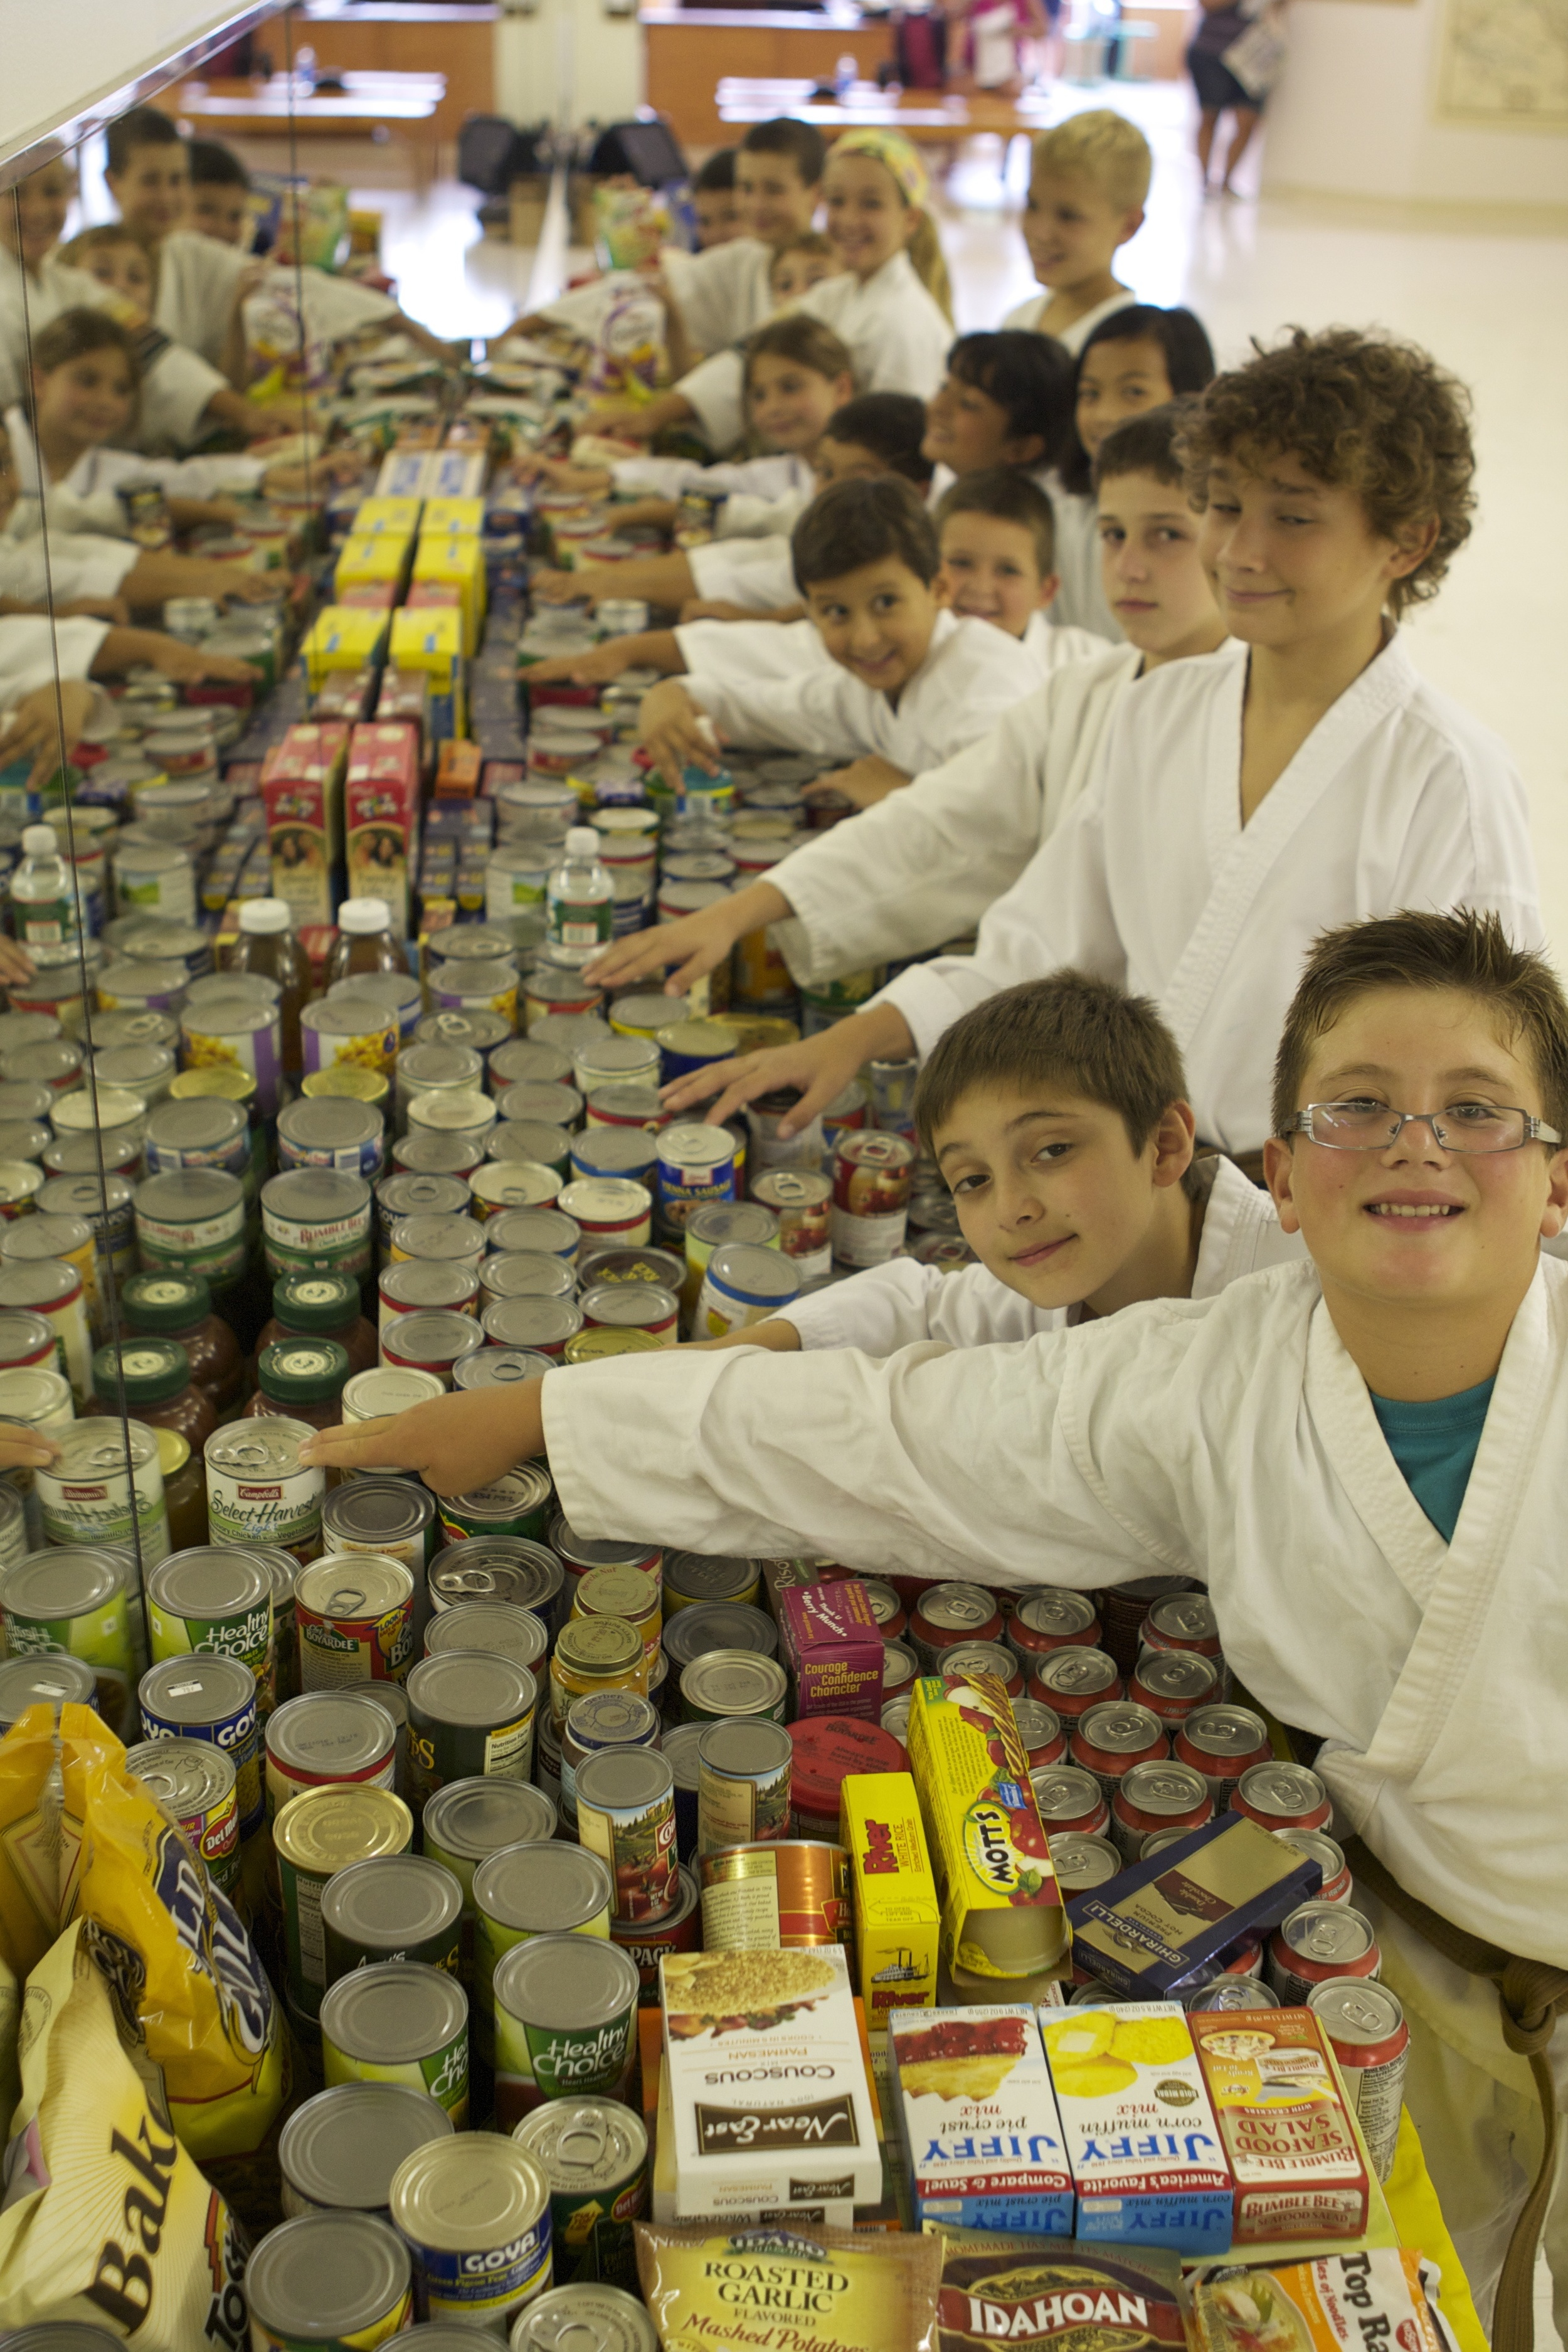 thedojo-food-drive-martial-arts-karate-kids-doing-community-service-in-rutherford-nj_14670783382_o.jpg